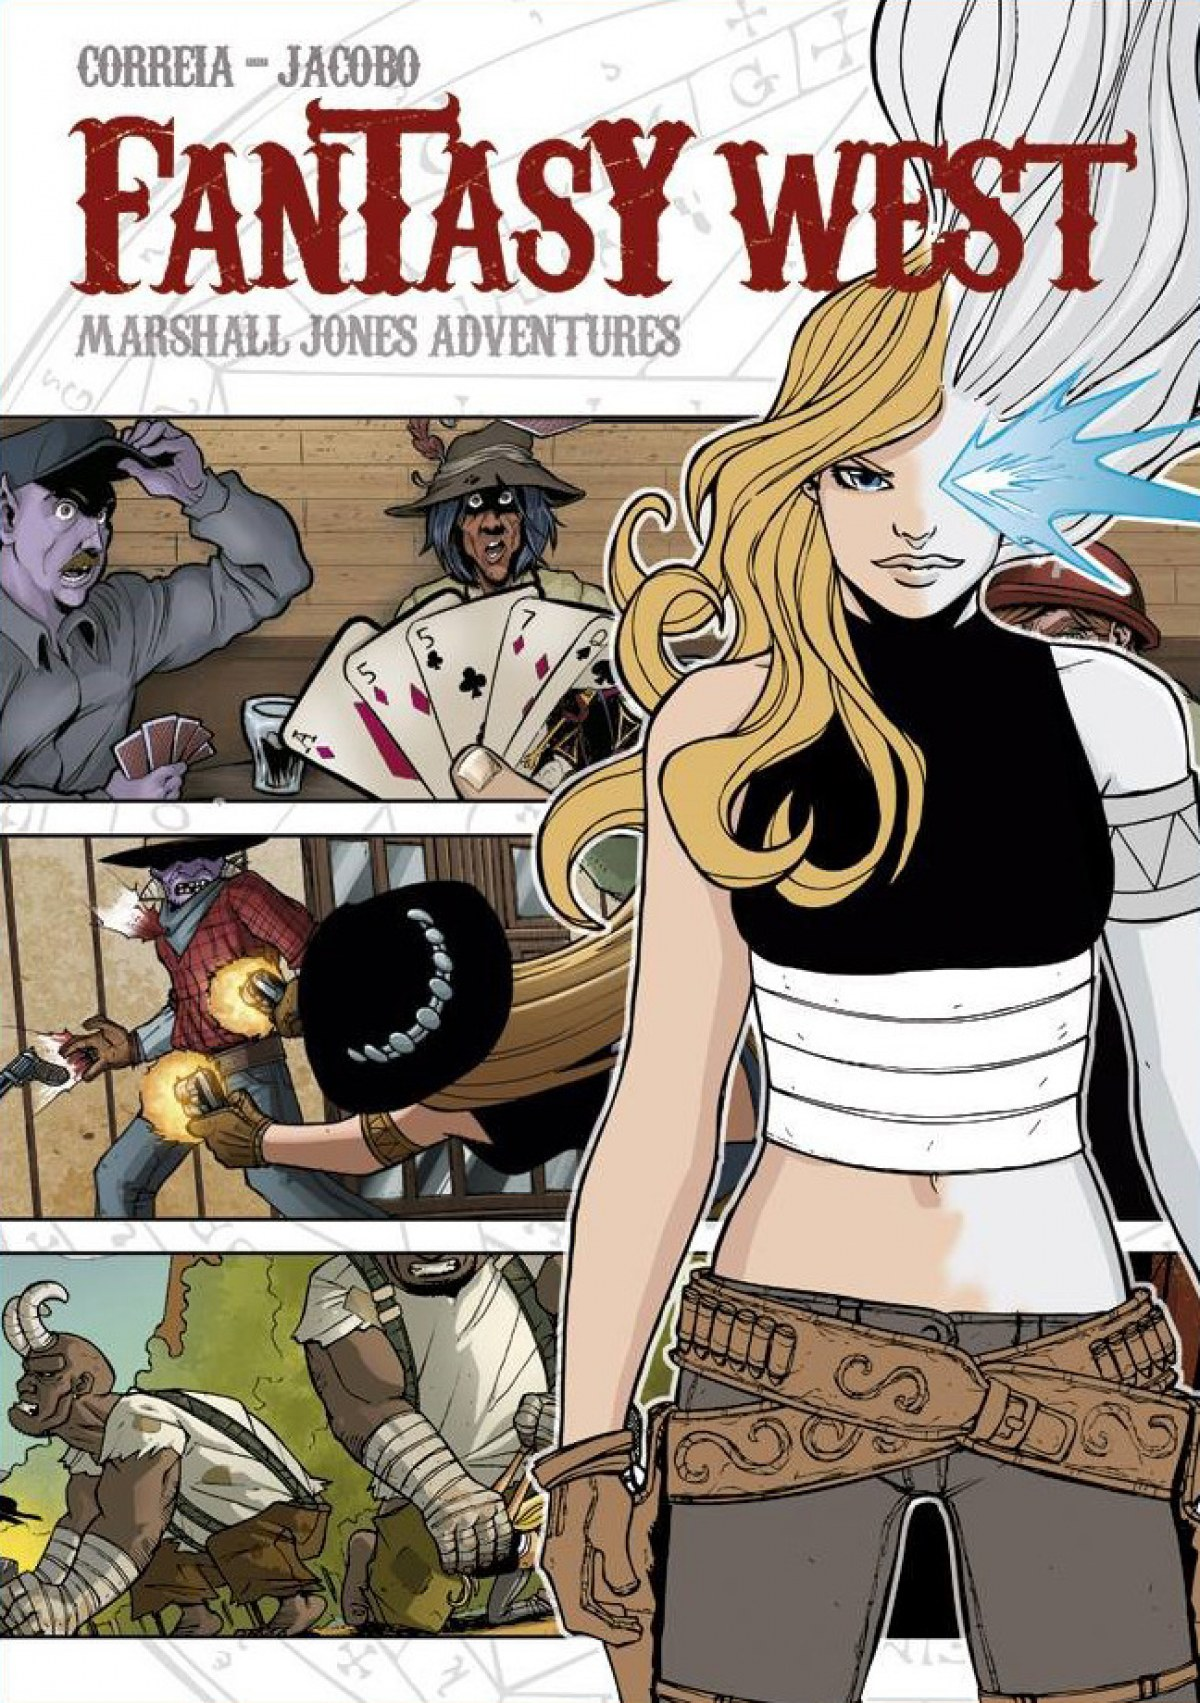 FANTASY WEST. MARSHALL JONES ADVENTURES